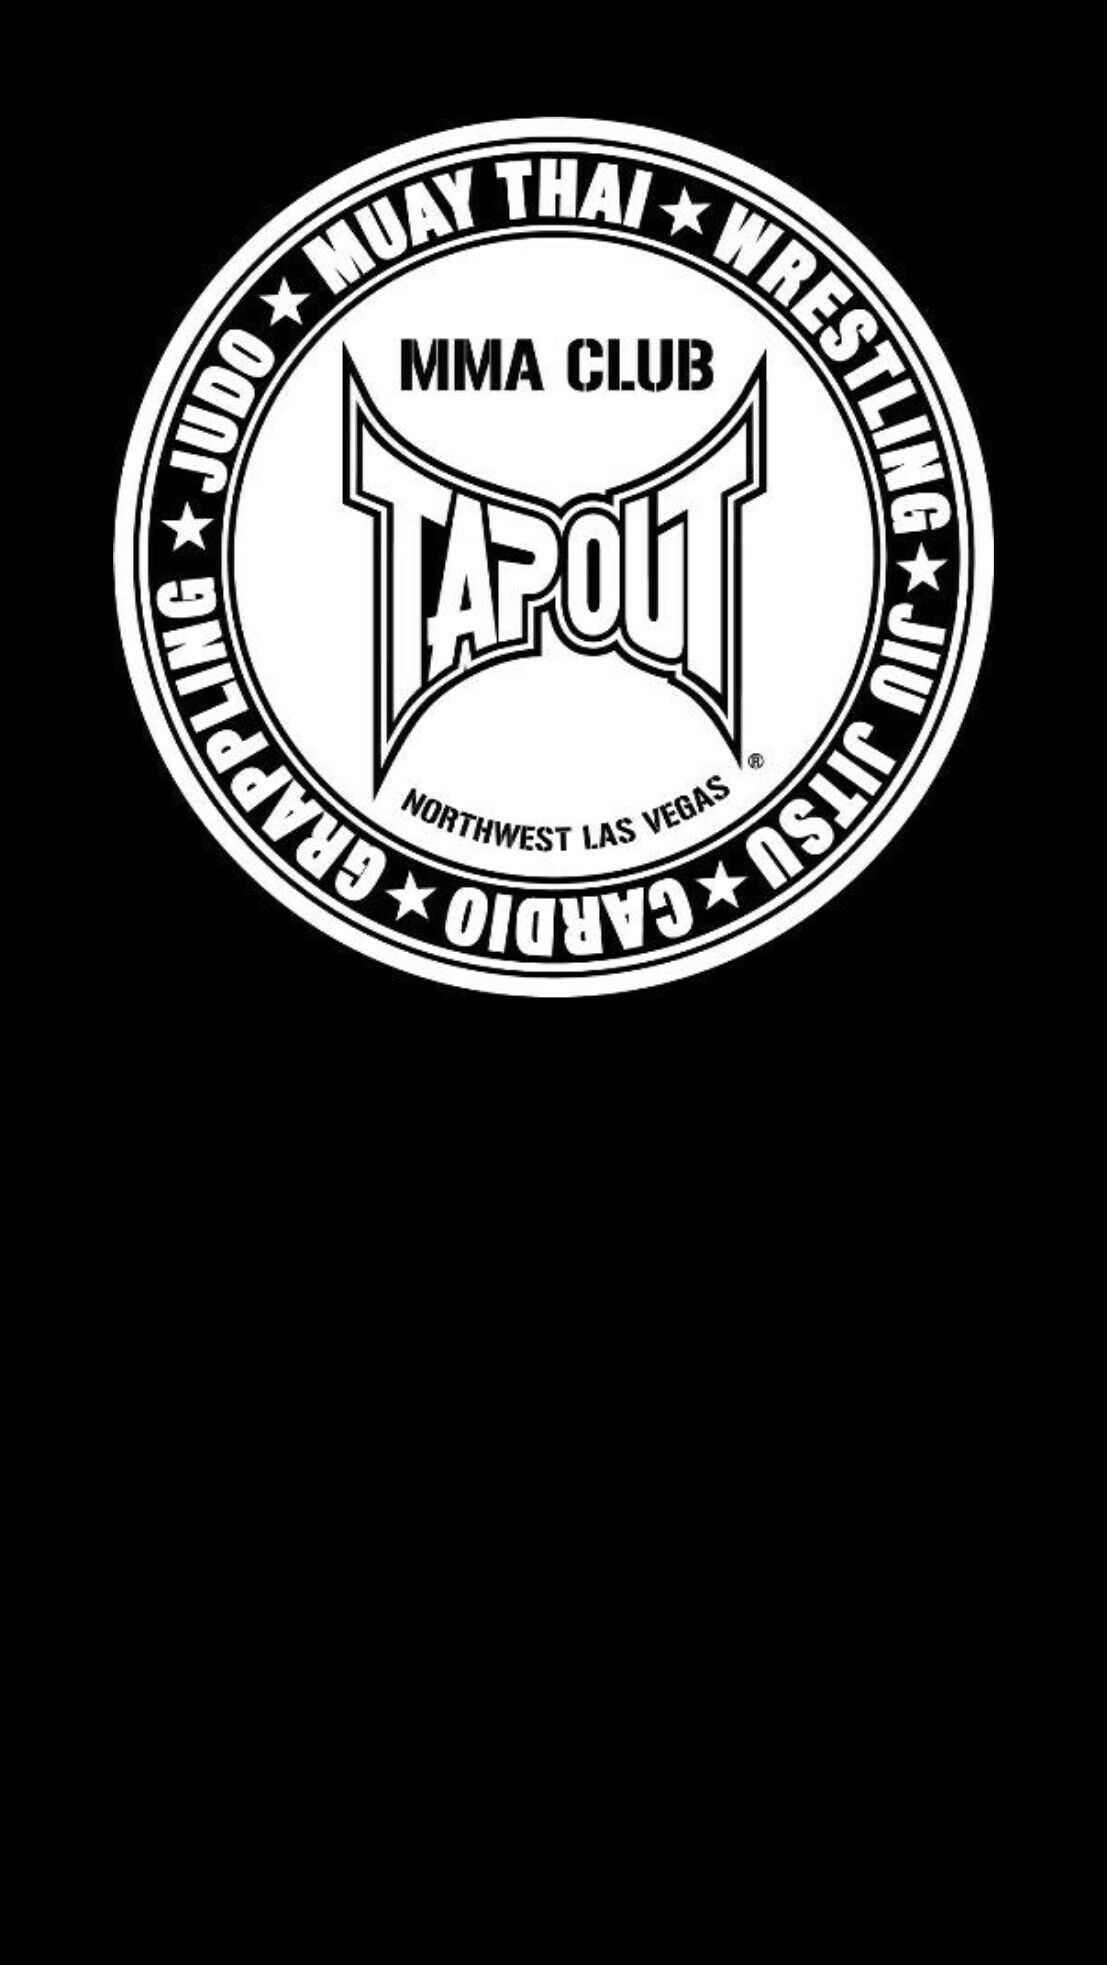 Tapout Black Wallpaper Android Iphone Imagenes Pinterest [ 1965 x 1107 Pixel ]